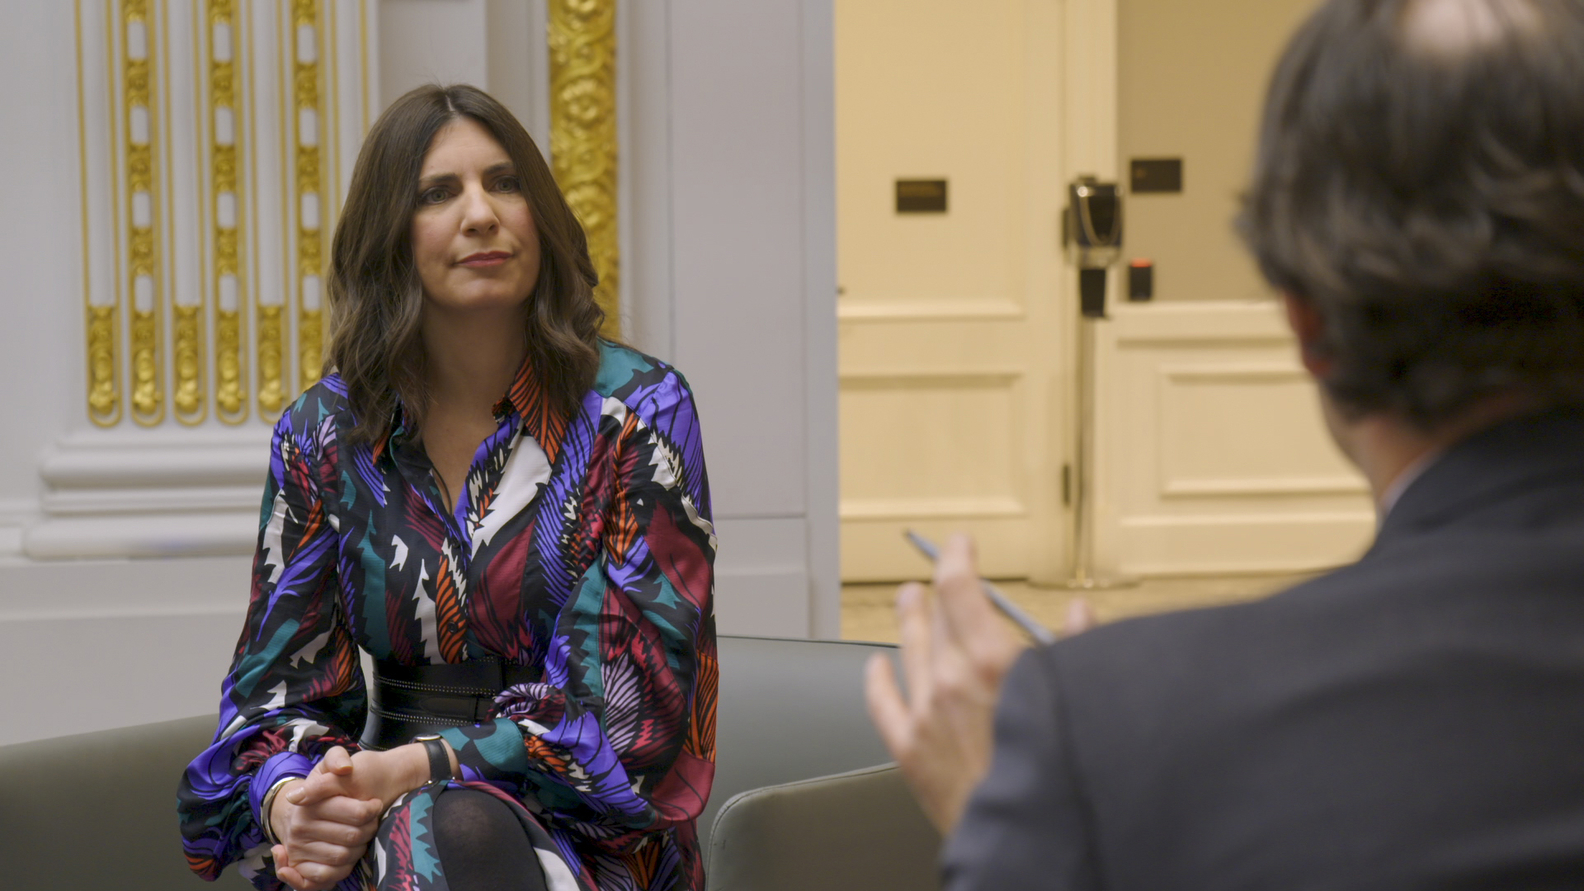 President of the New York Stock Exchange Stacey Cunningham, Axios business editor Dan Primack